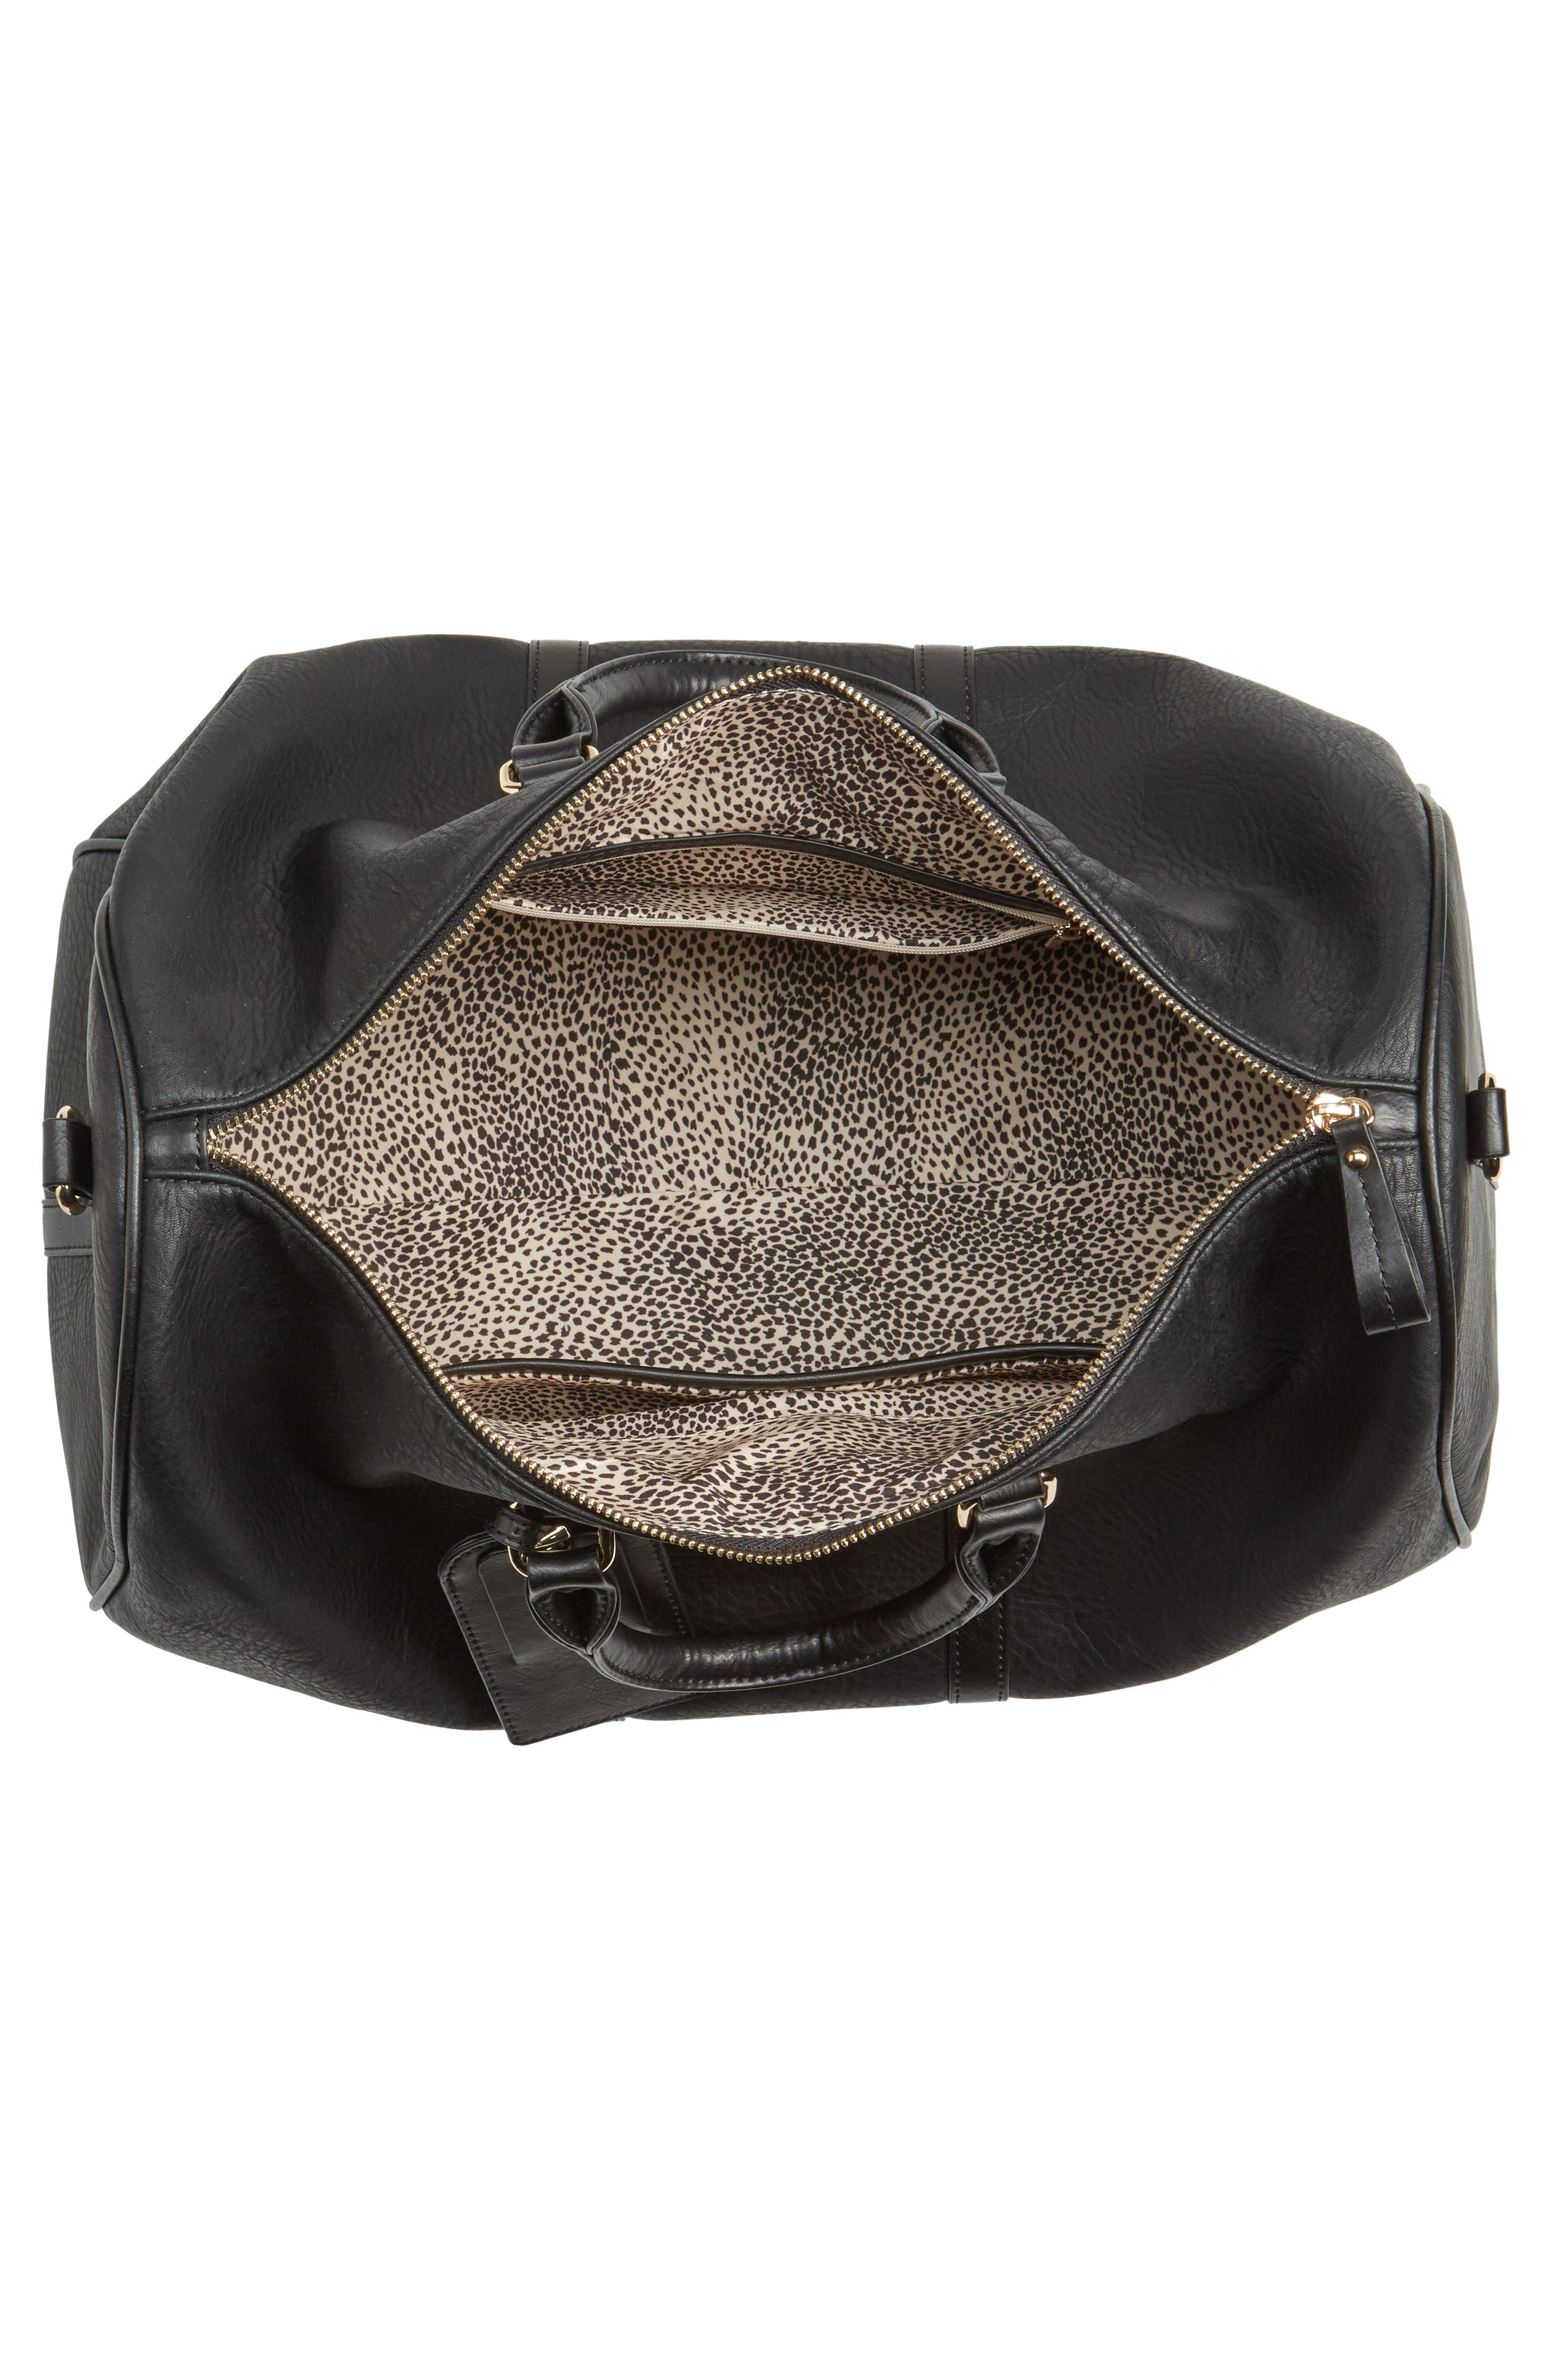 'Cassidy' Faux Leather Duffel Bag,                             Alternate thumbnail 4, color,                             002